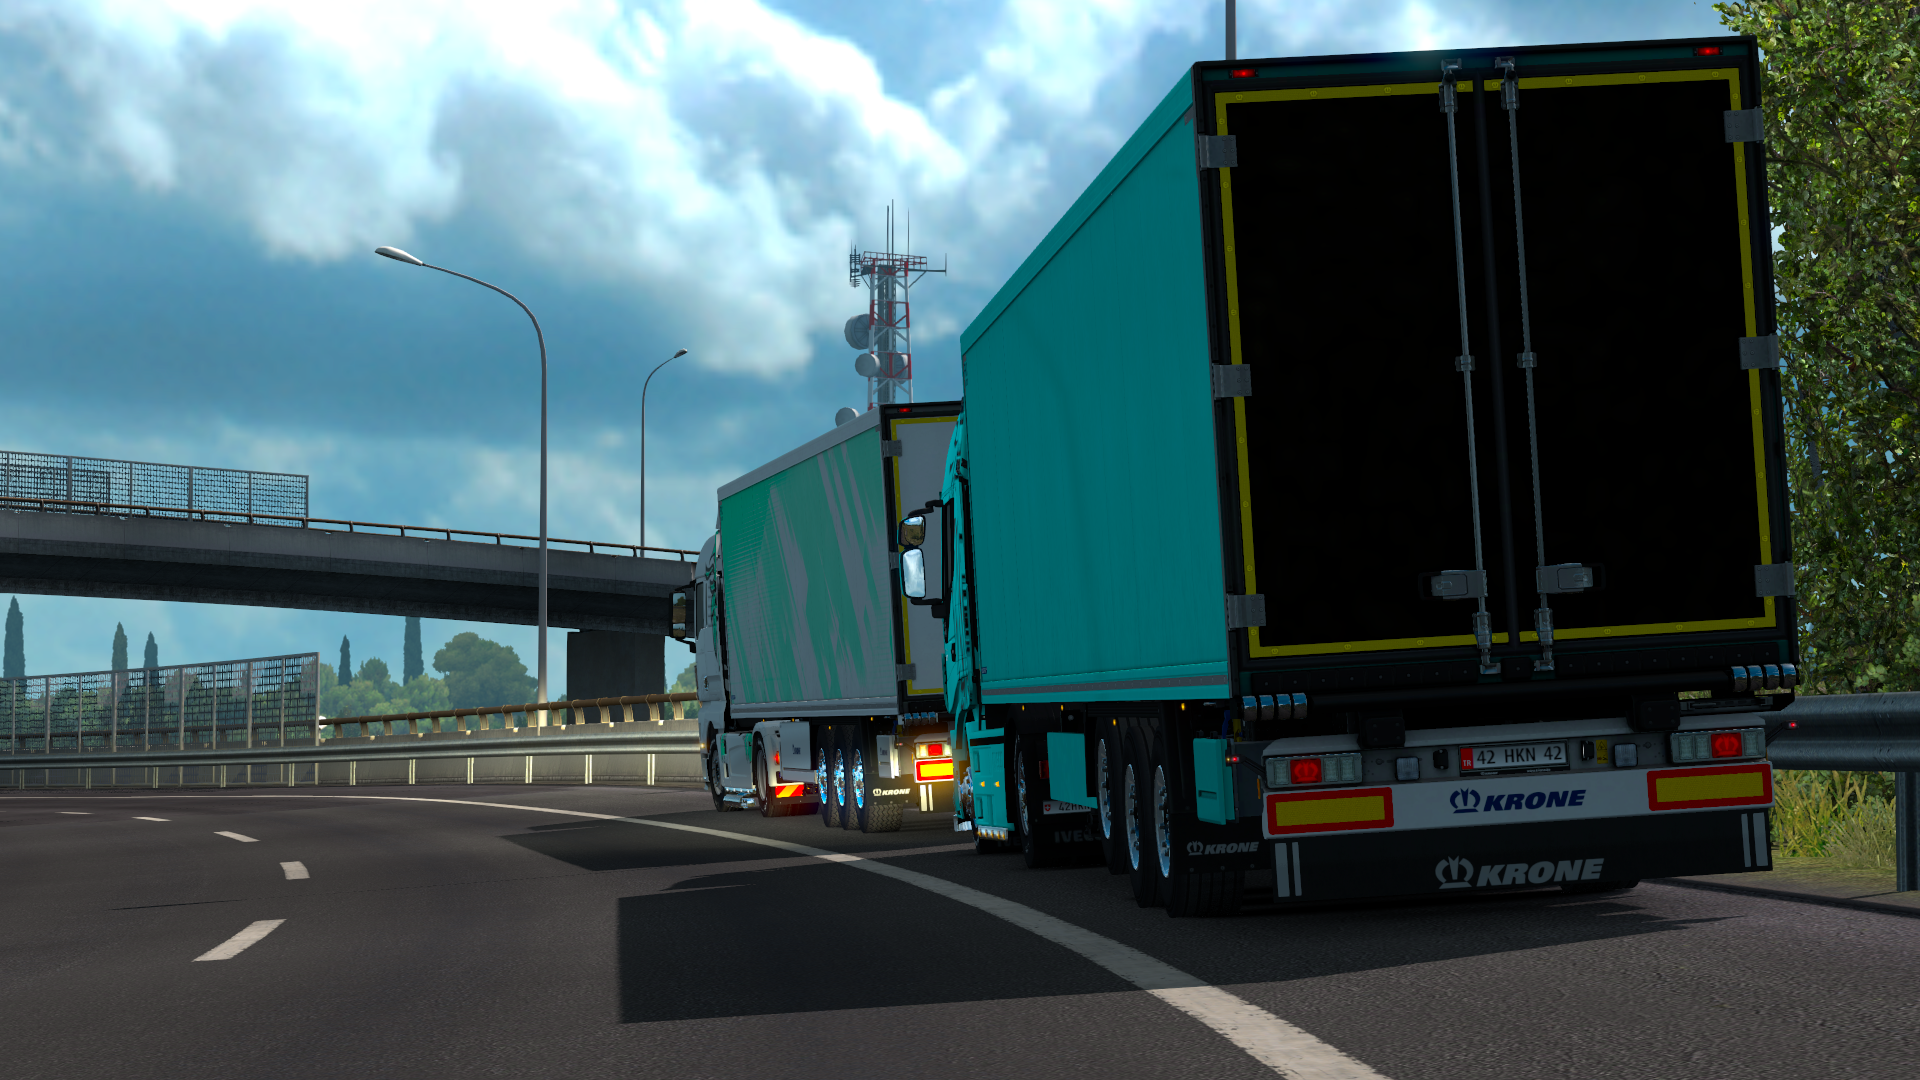 ets2_20190324_155106_00.png